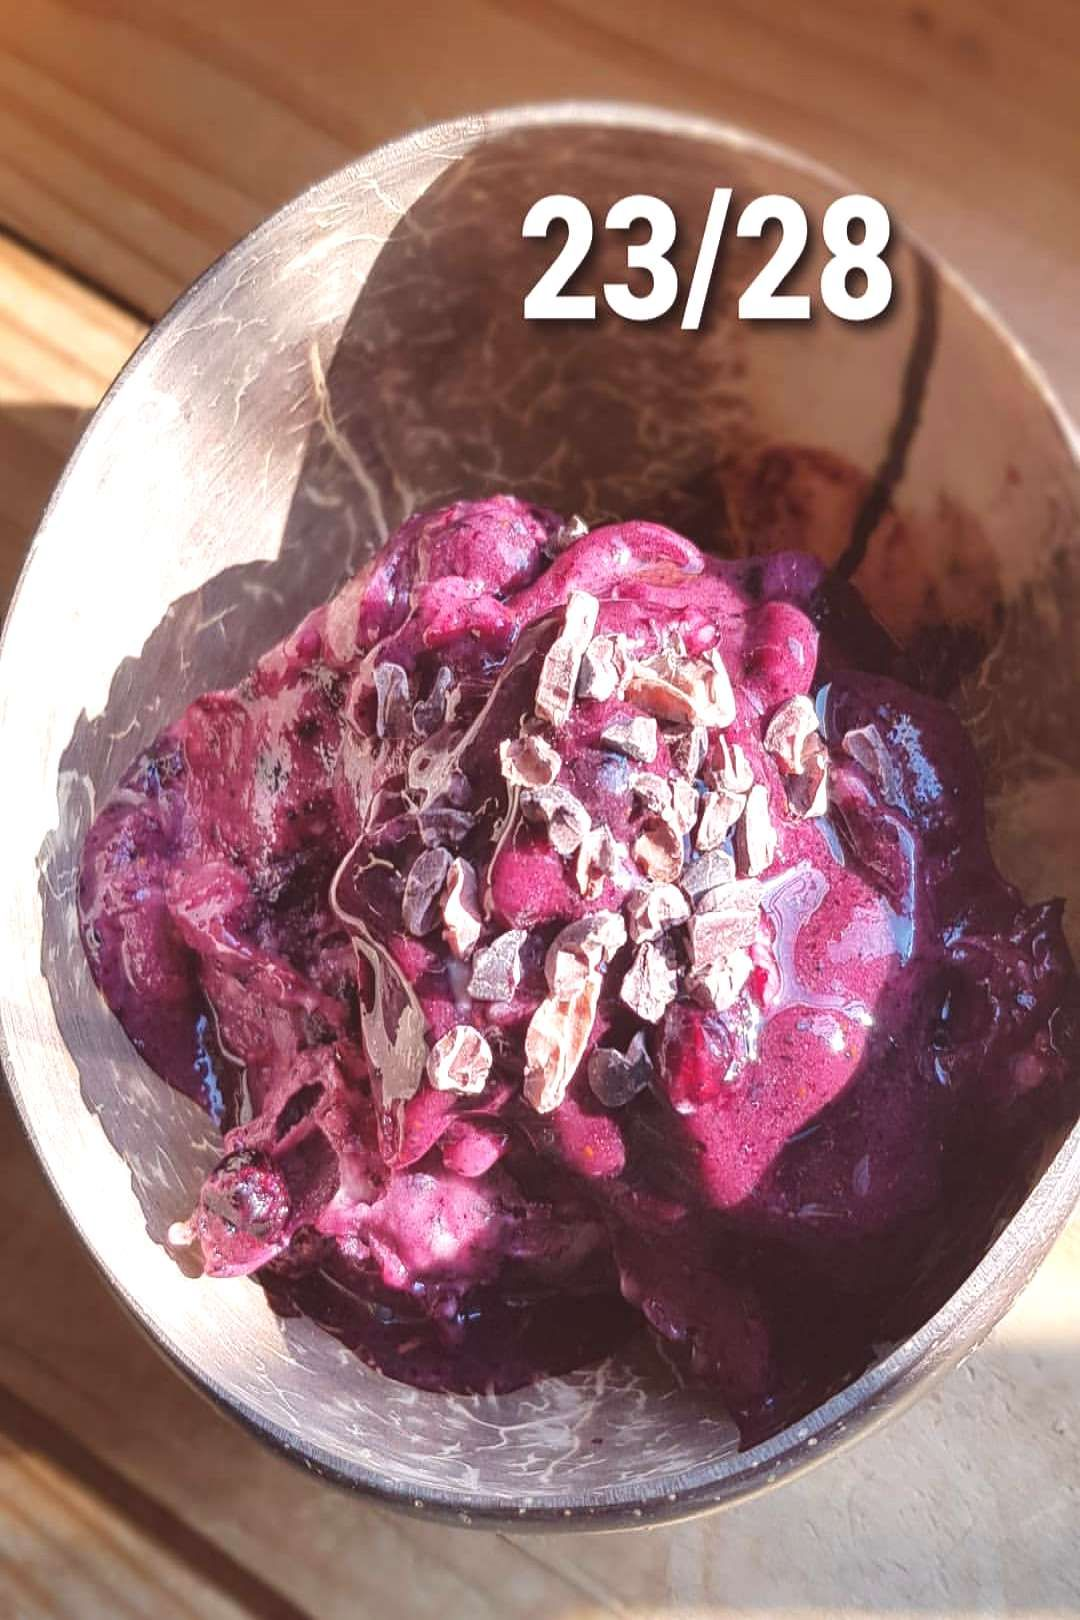 #rawvegan #bianca #kirsch #march #2020 #food #text #that #says #2328 #on #28 Bianca Kirsch on March 28 2020 food text that says 2328You can find Raw vegan and more on our website.Bianca Kirsch on March 28 2020 food text that says 2328